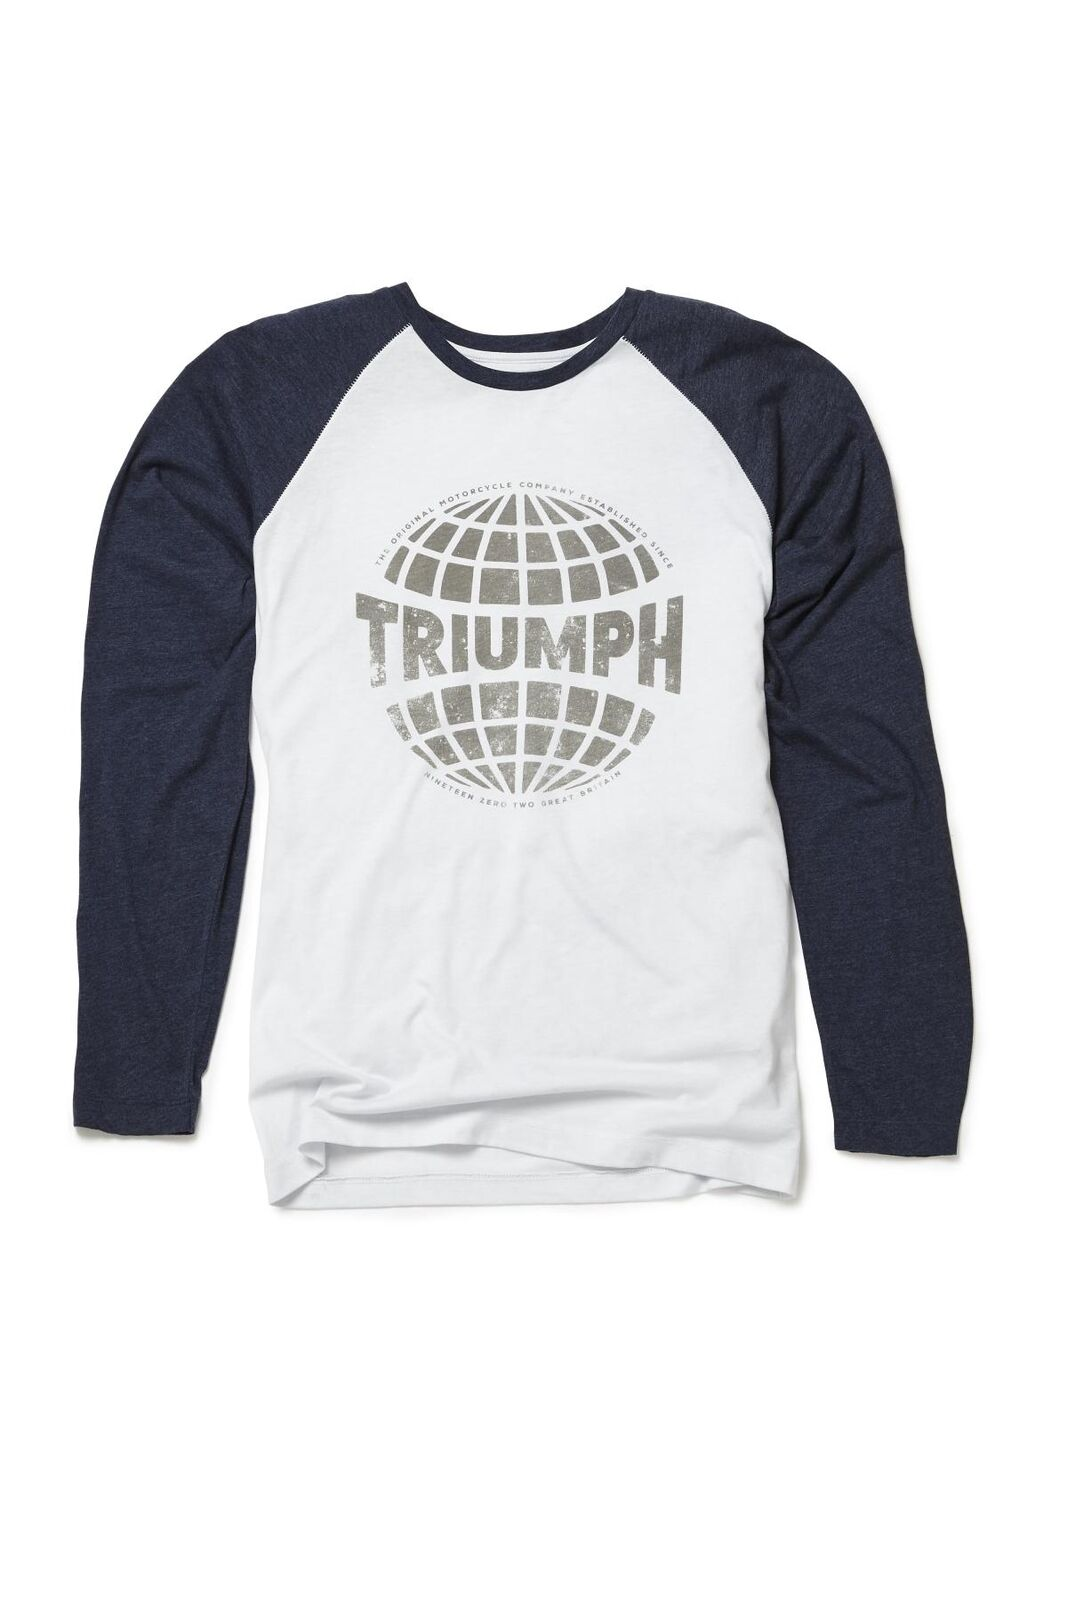 Triumph Reid Raglan Long Sleeved T-Shirt